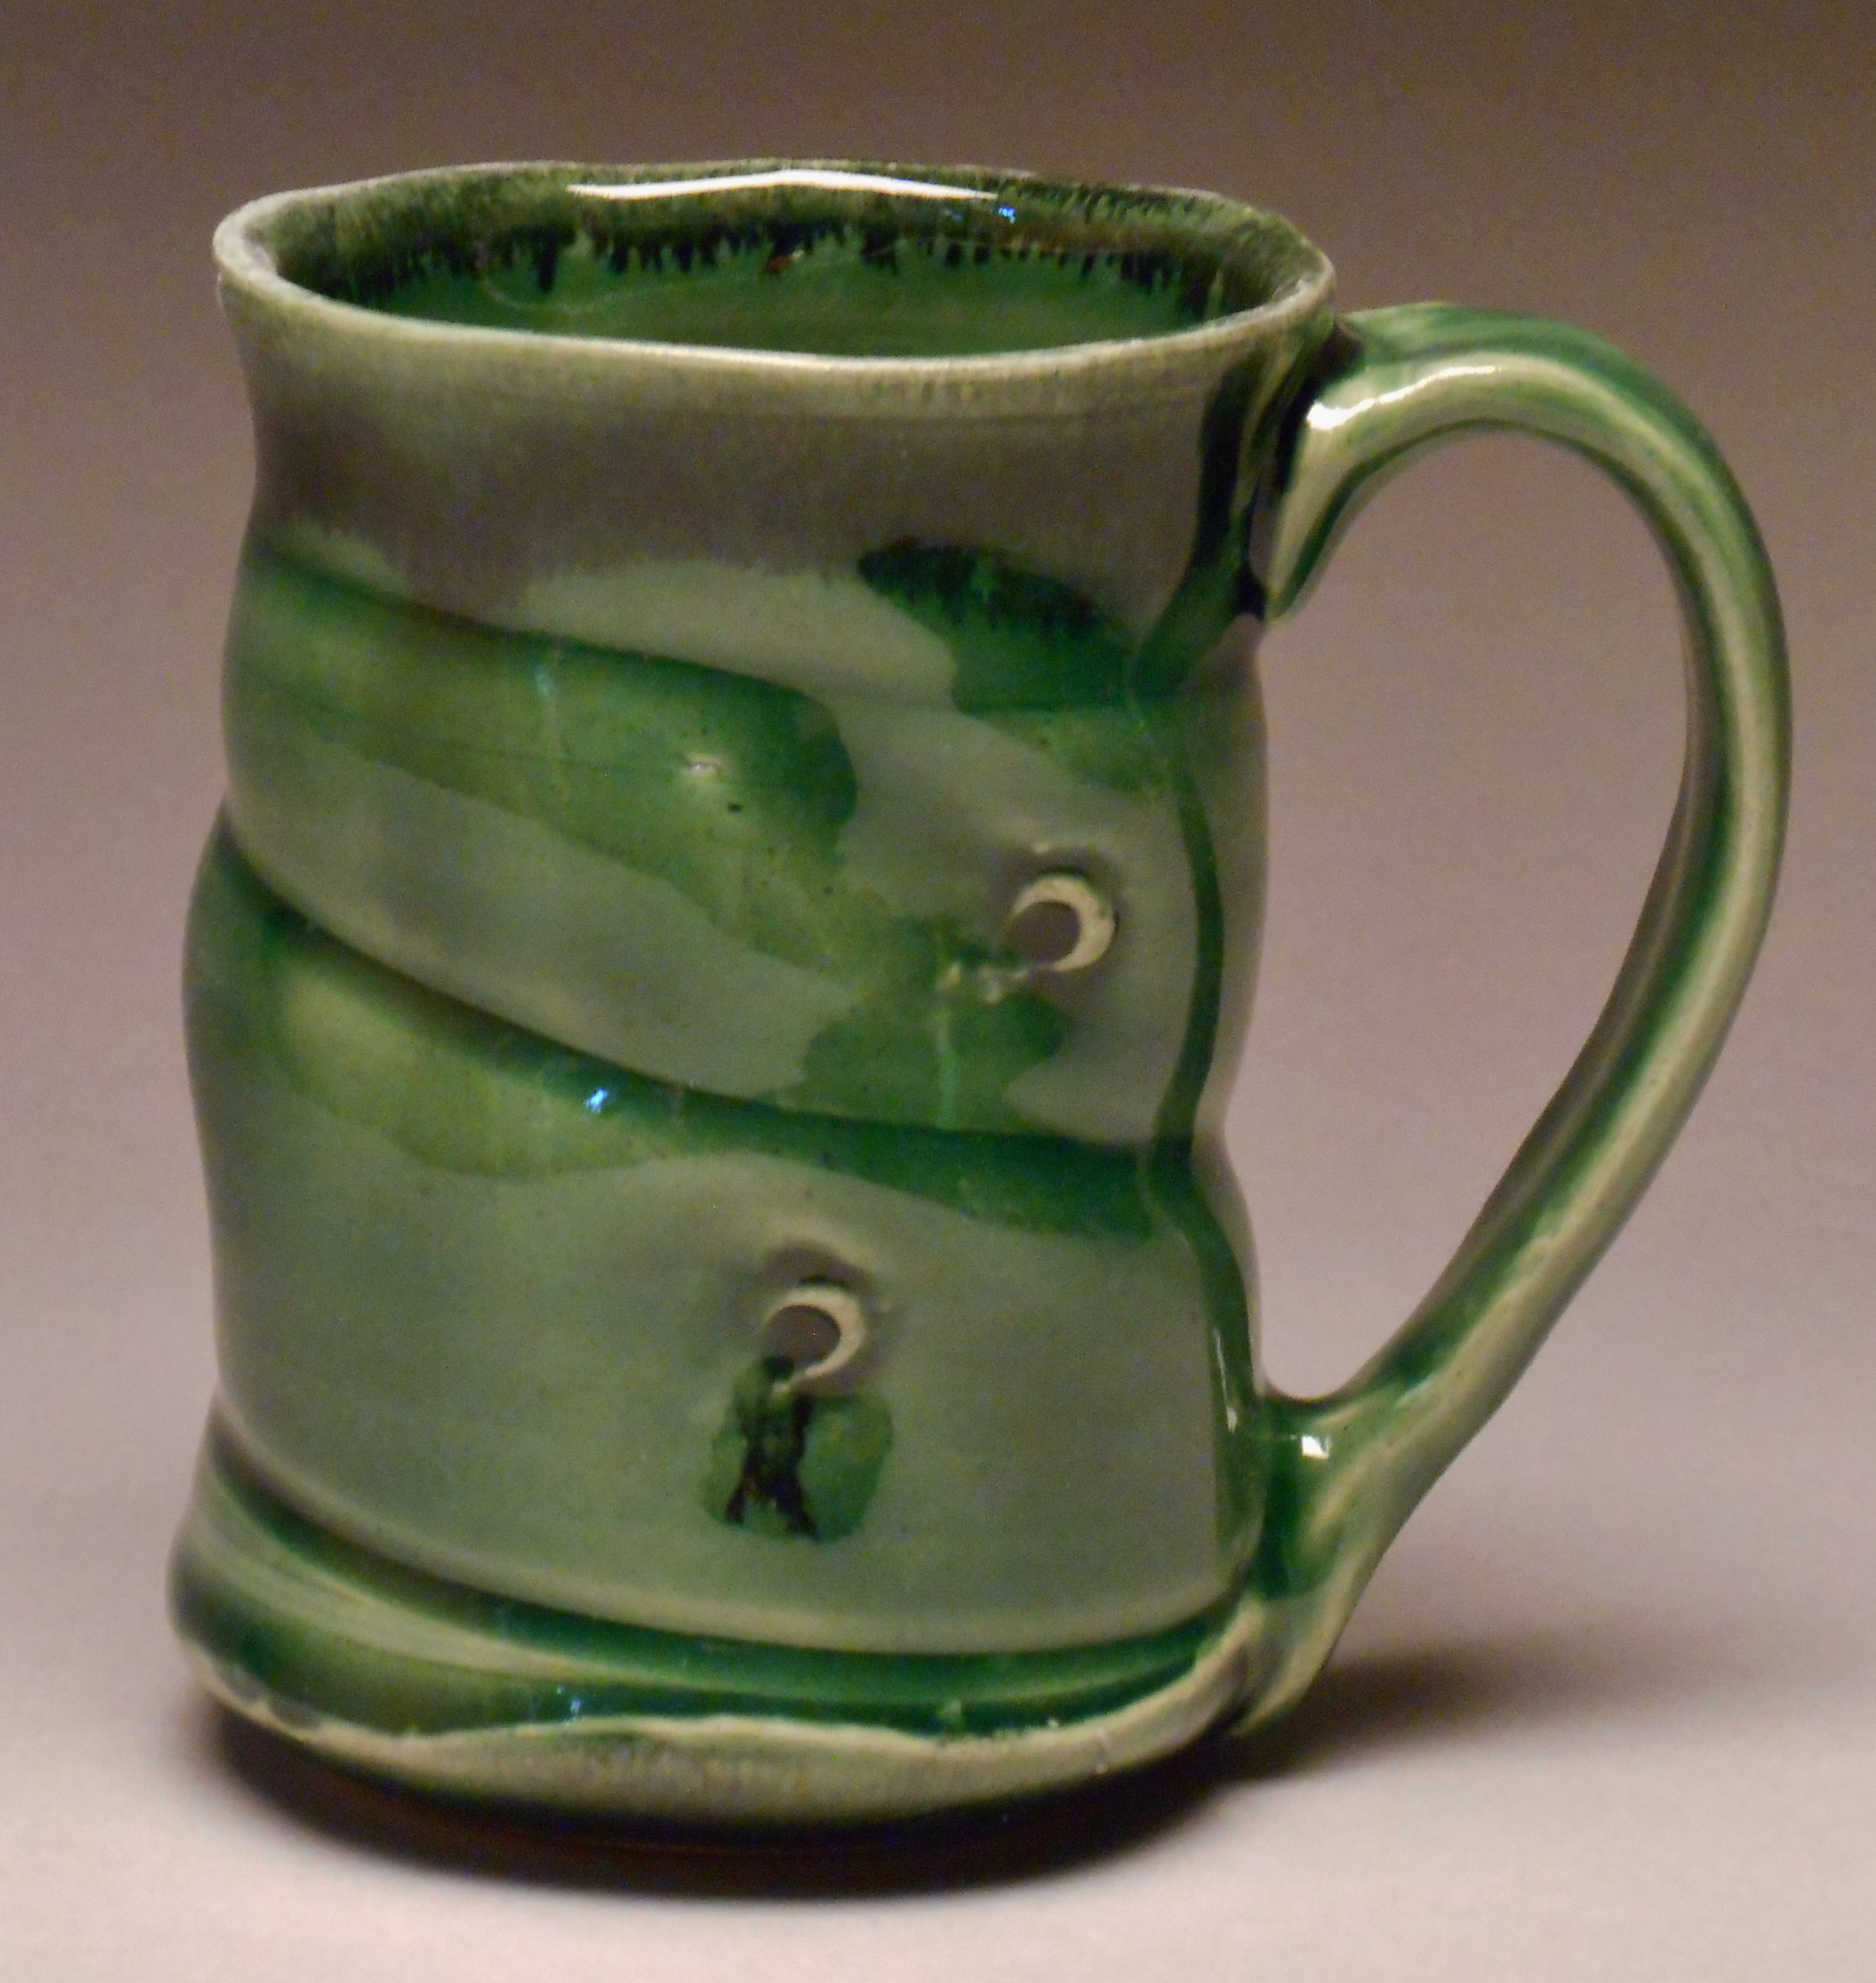 #204, Cup, 4.5x3.25, Available at Wild Hands in Jackson, WY